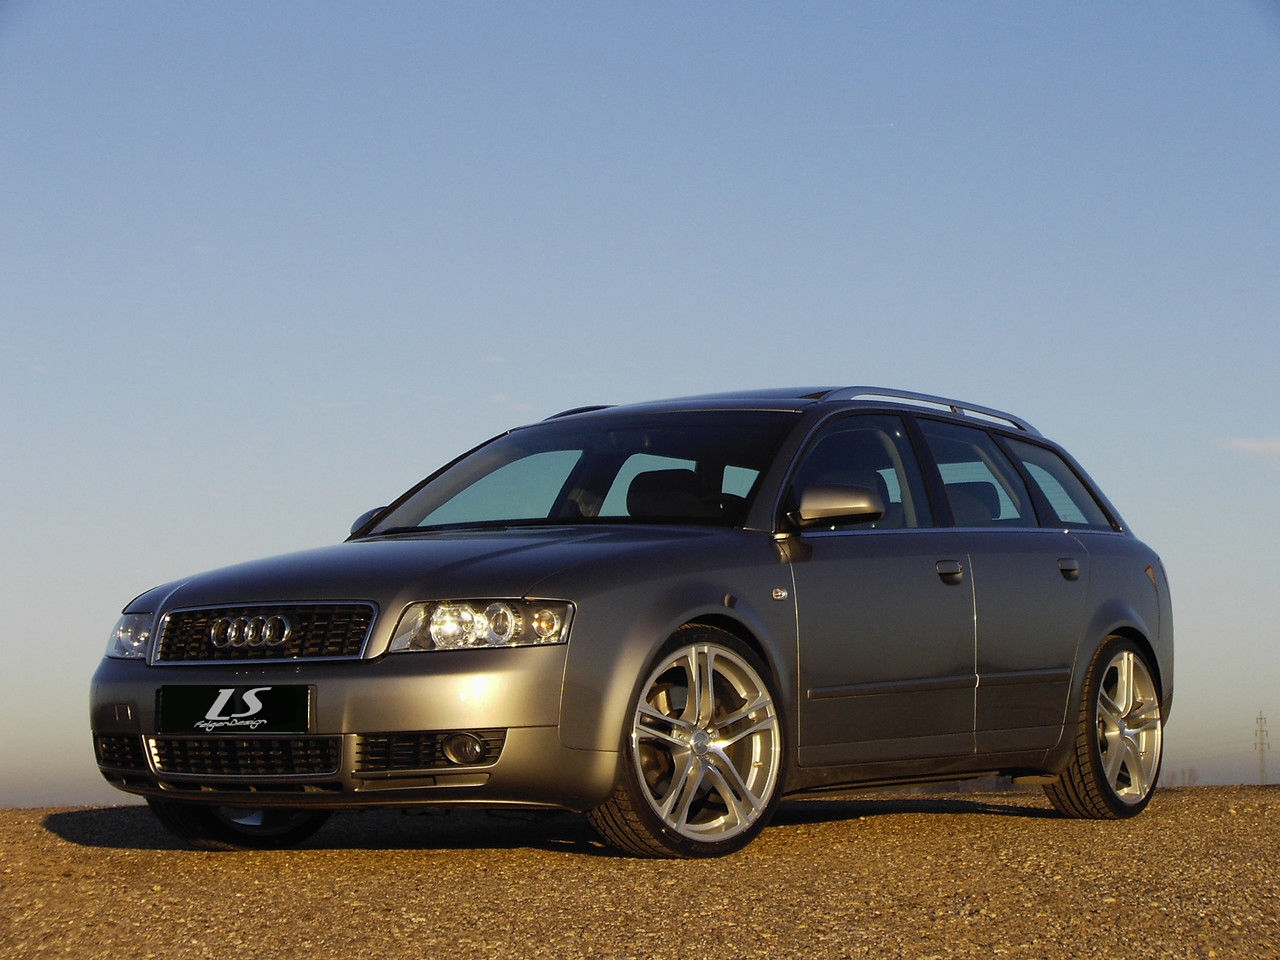 news alufelgen audi a4 avant 8e mit 19zoll felgen ls14 silber. Black Bedroom Furniture Sets. Home Design Ideas